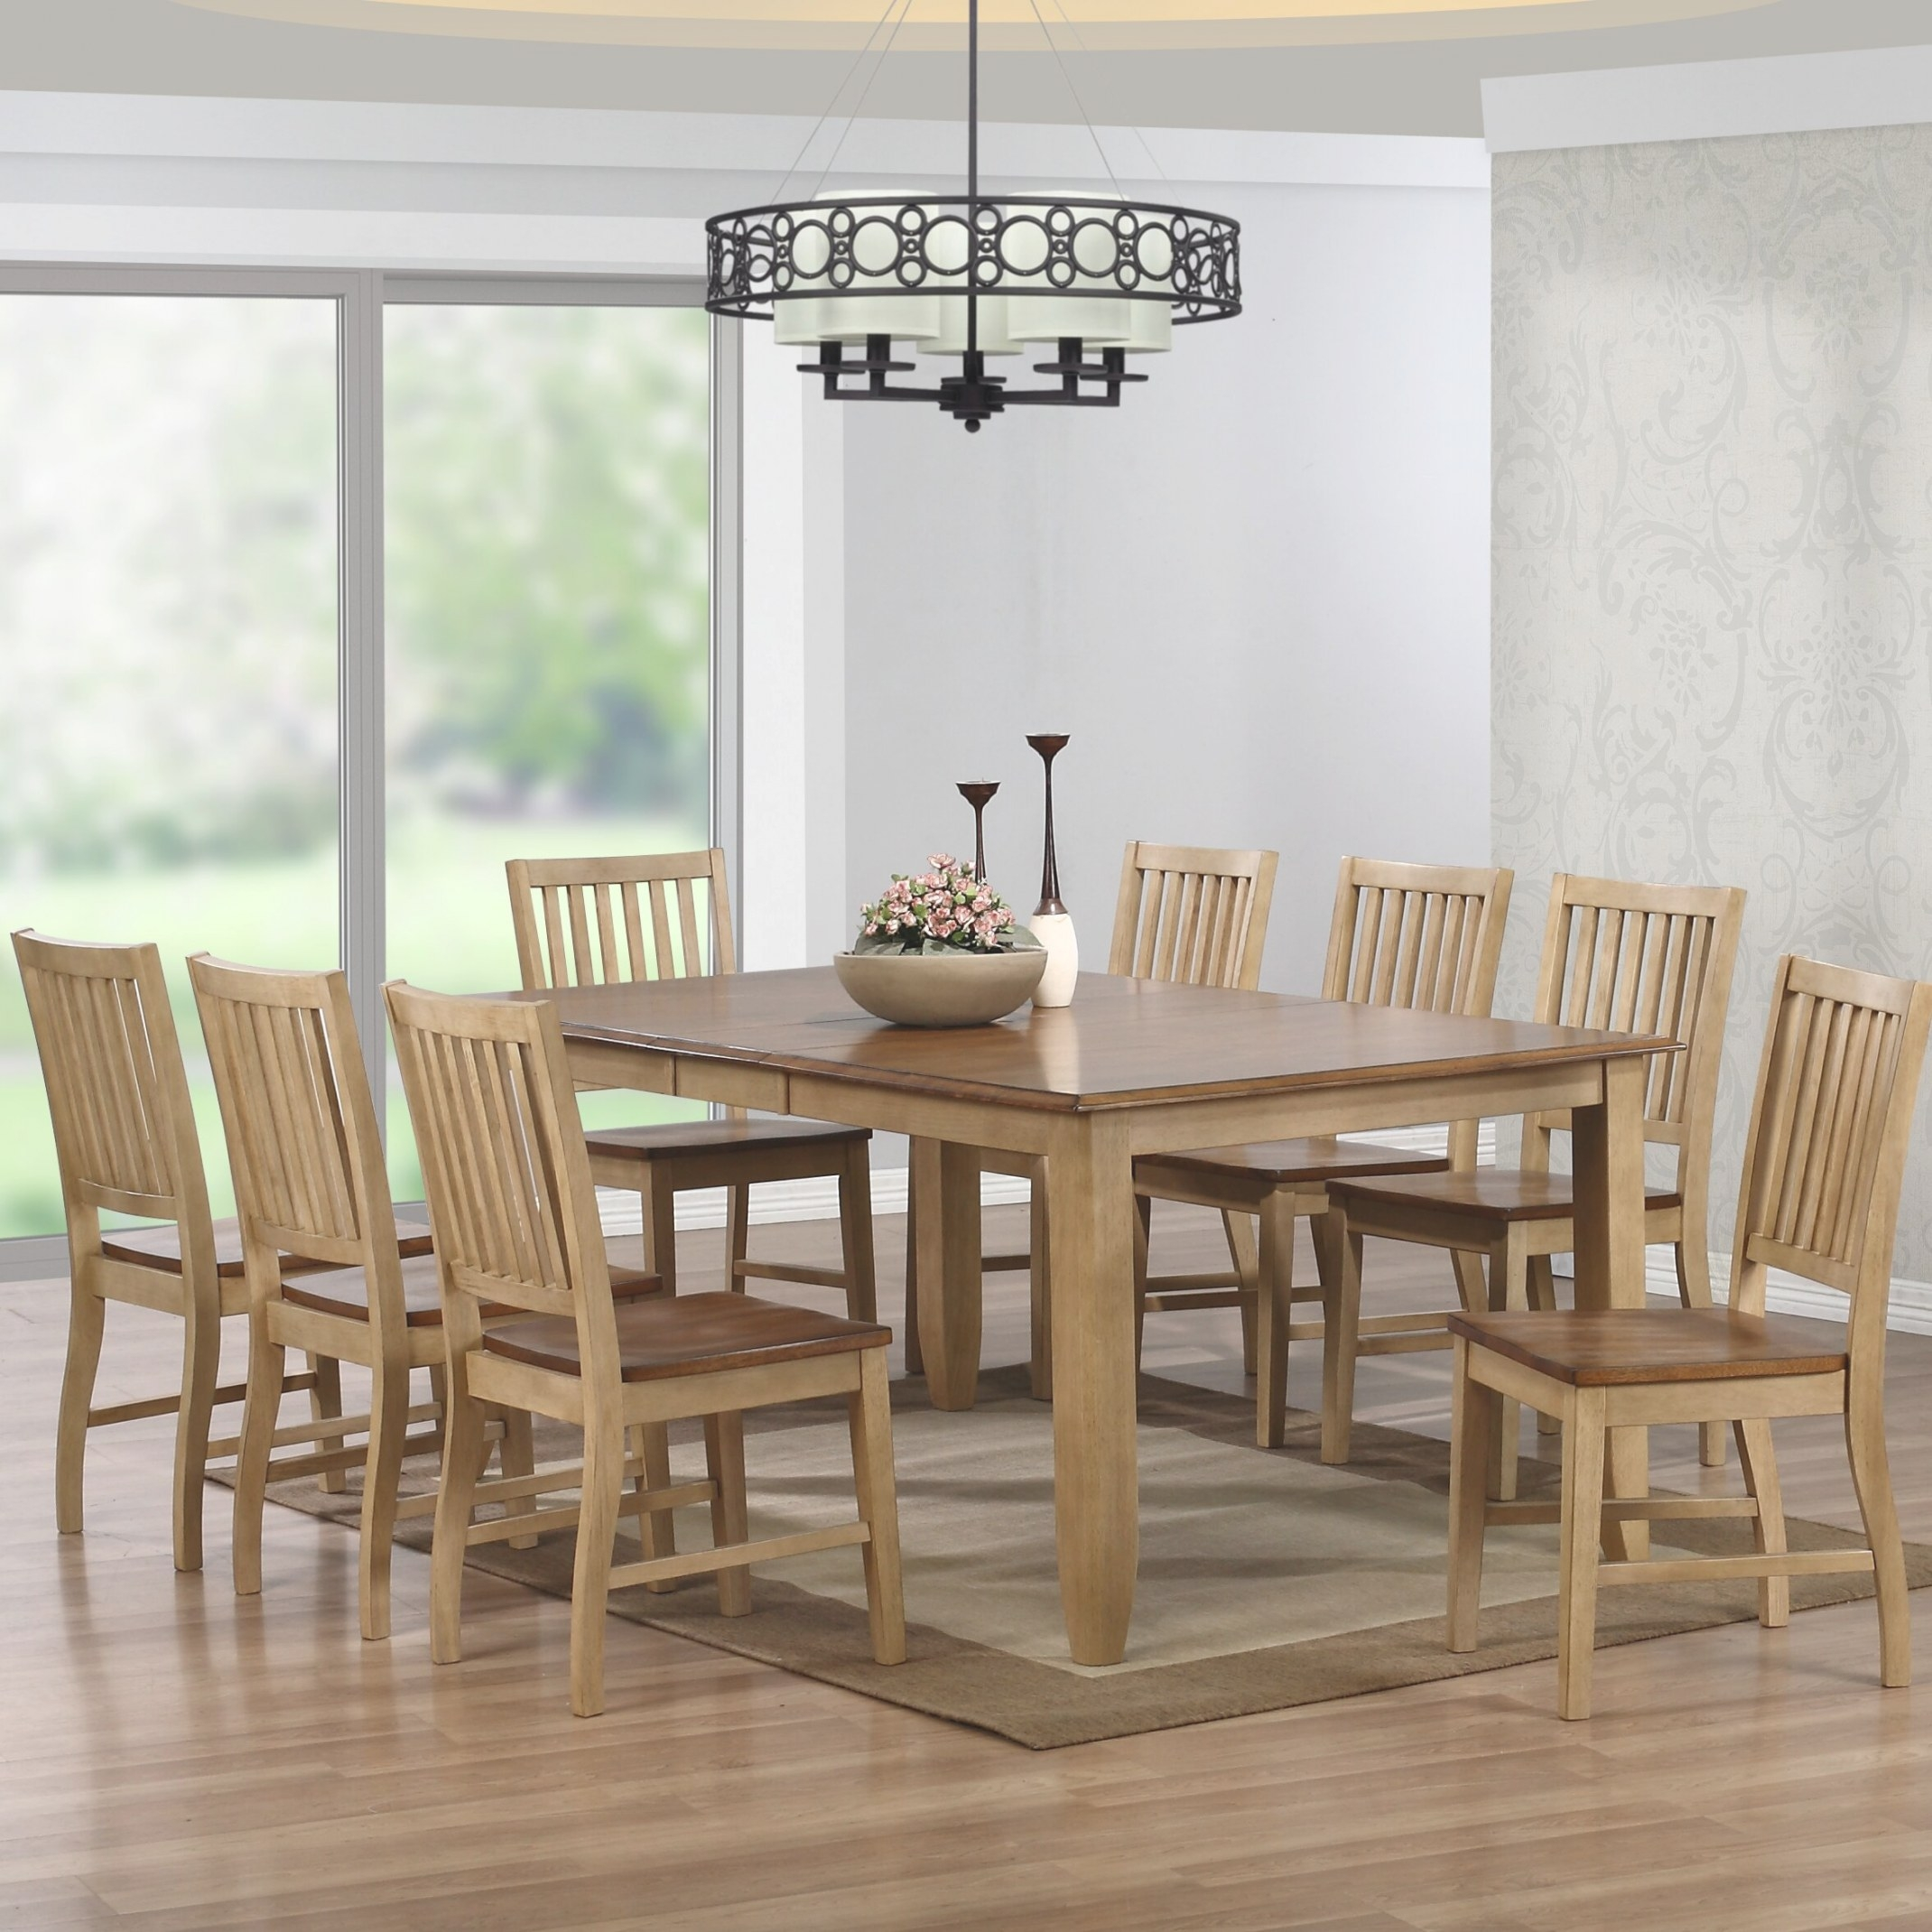 Sunset Trading Brook 9 Piece Dining Set & Reviews | Wayfair pertaining to 9 Piece Dining Set